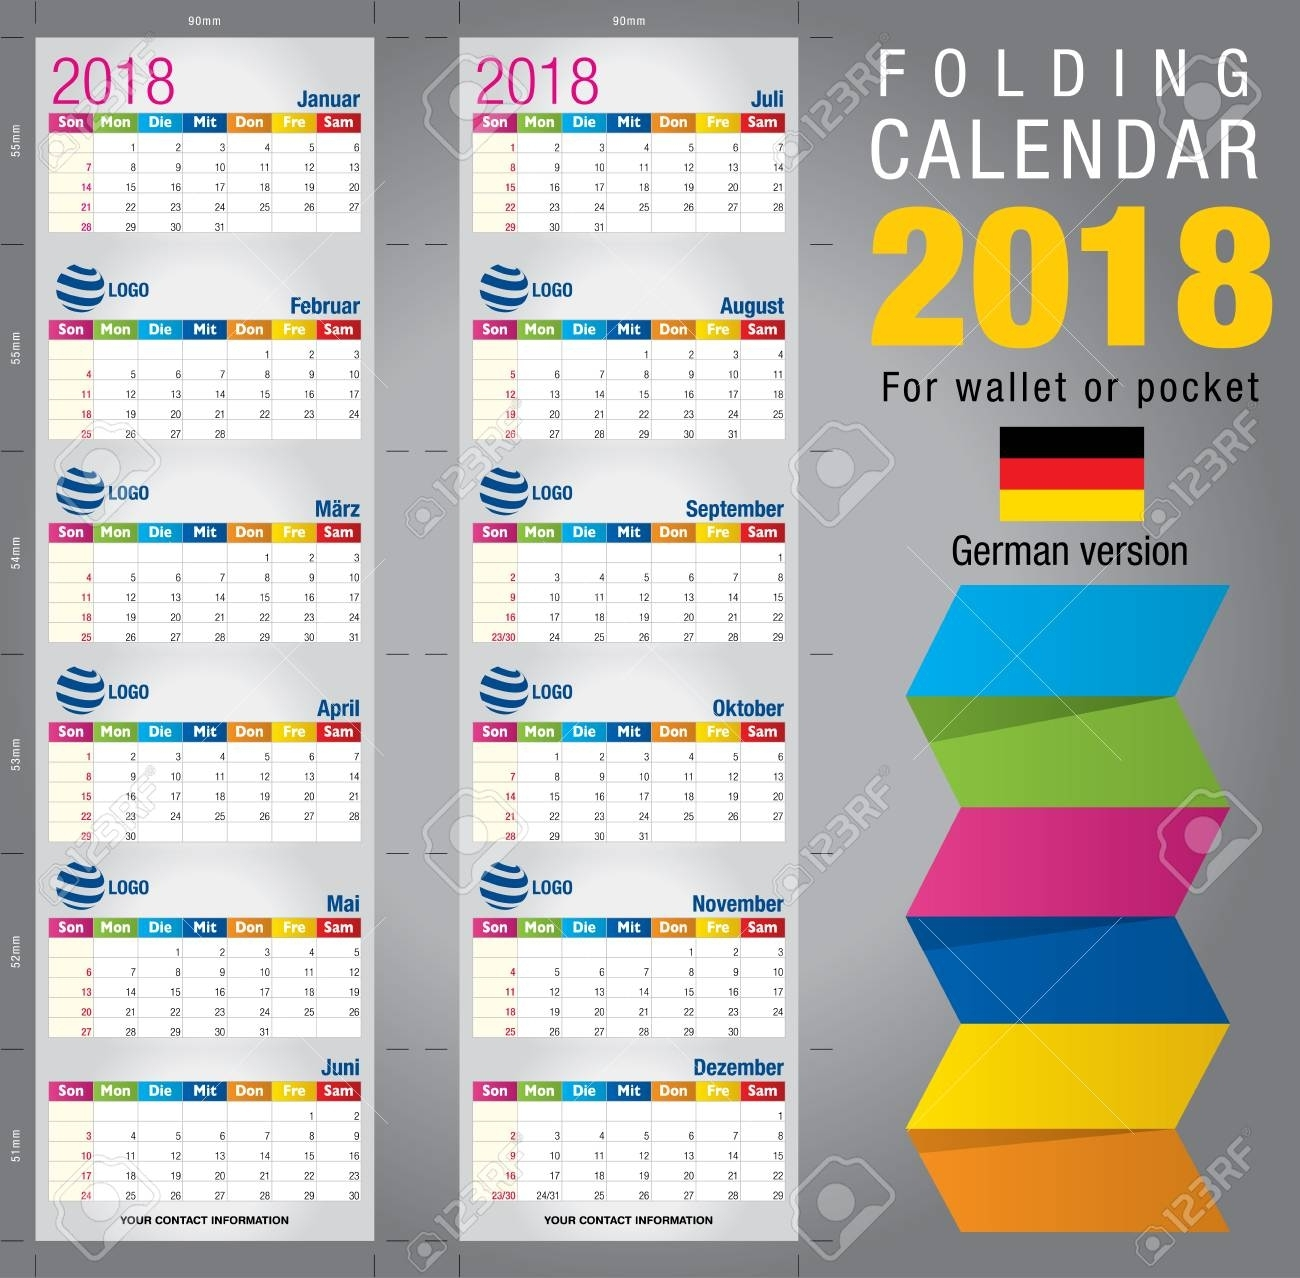 Useful Foldable Calendar 2018, Colorful Template. Open Size:.. with regard to Free Foldable Pocket Size Calendar Template